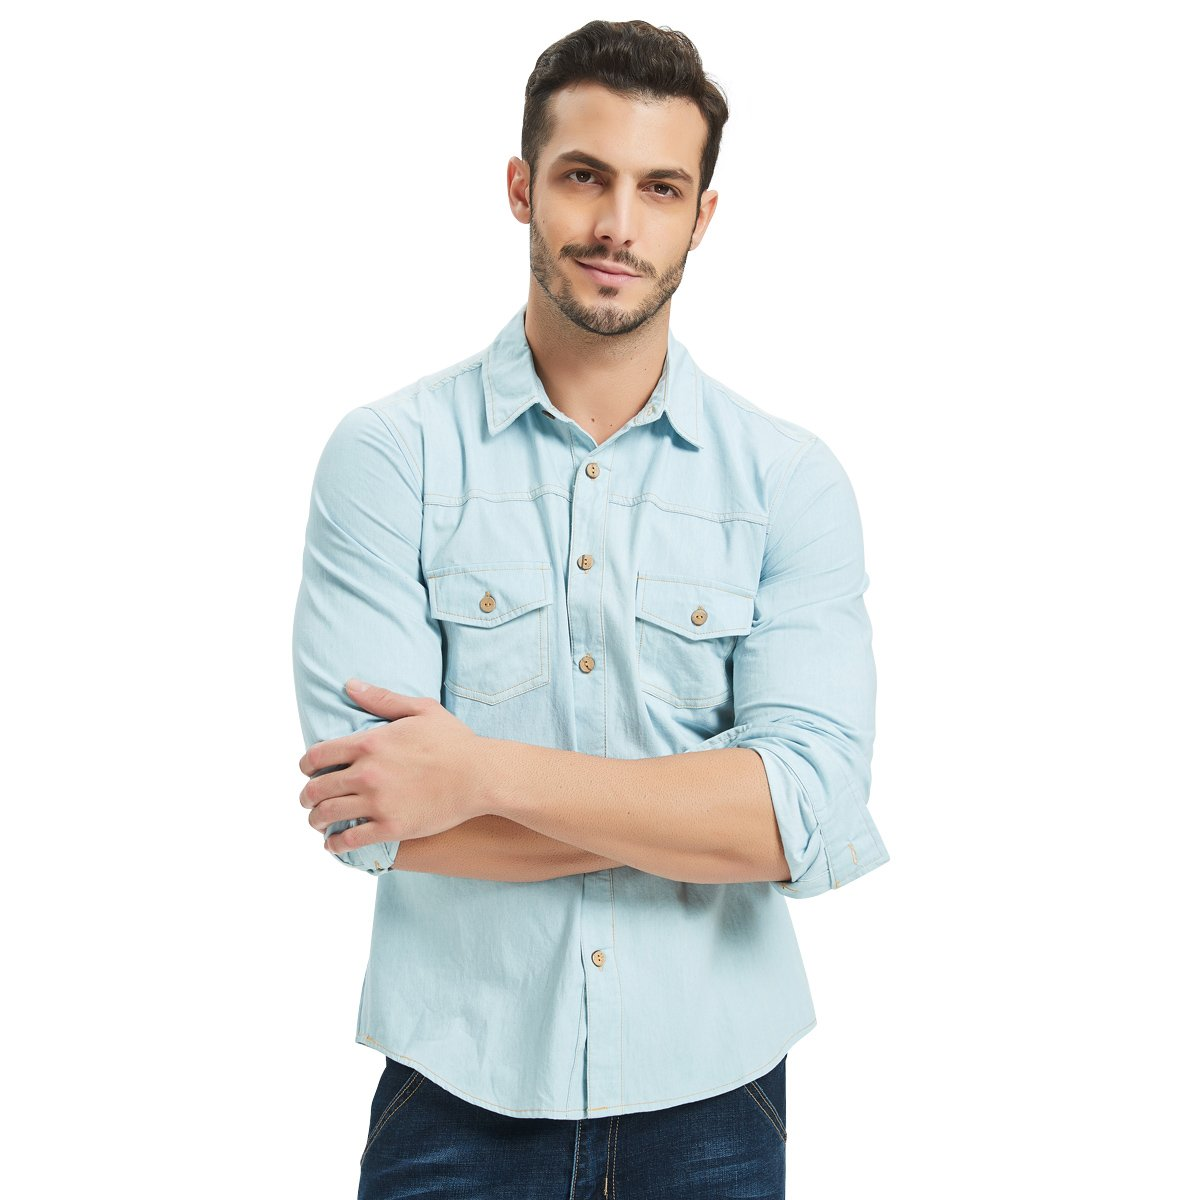 d854d7a8fc Men s Long Sleeve Denim Shirt 2 Pocket Button Down Casual Wear Faded Light  Blue at Amazon Men s Clothing store